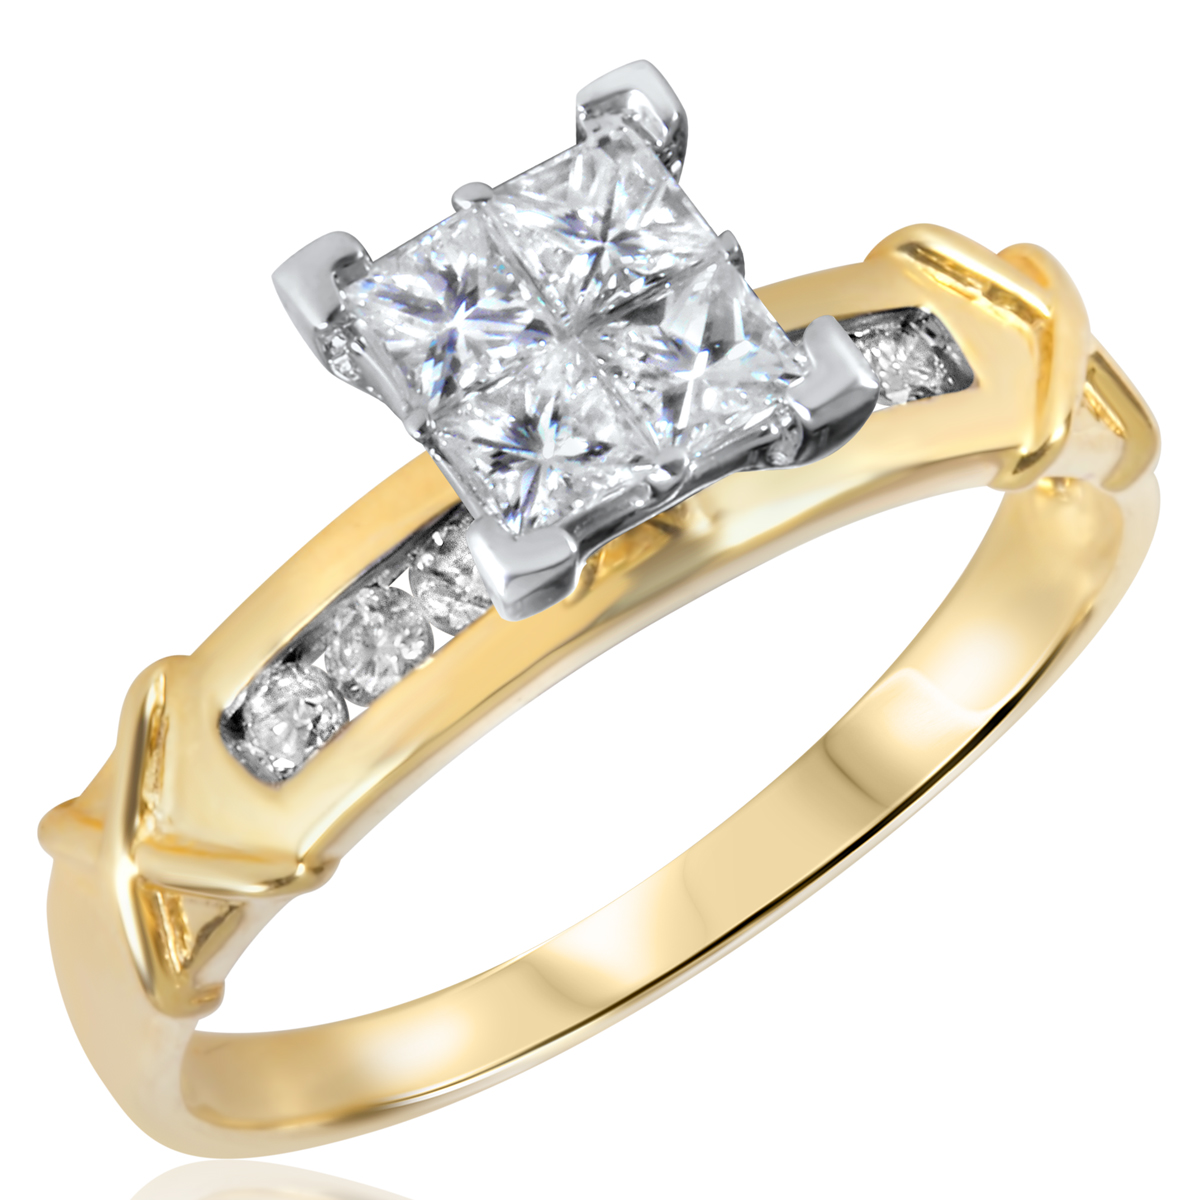 3/4 CT. T.W. Diamond Ladies Engagement Ring 14K Yellow Gold